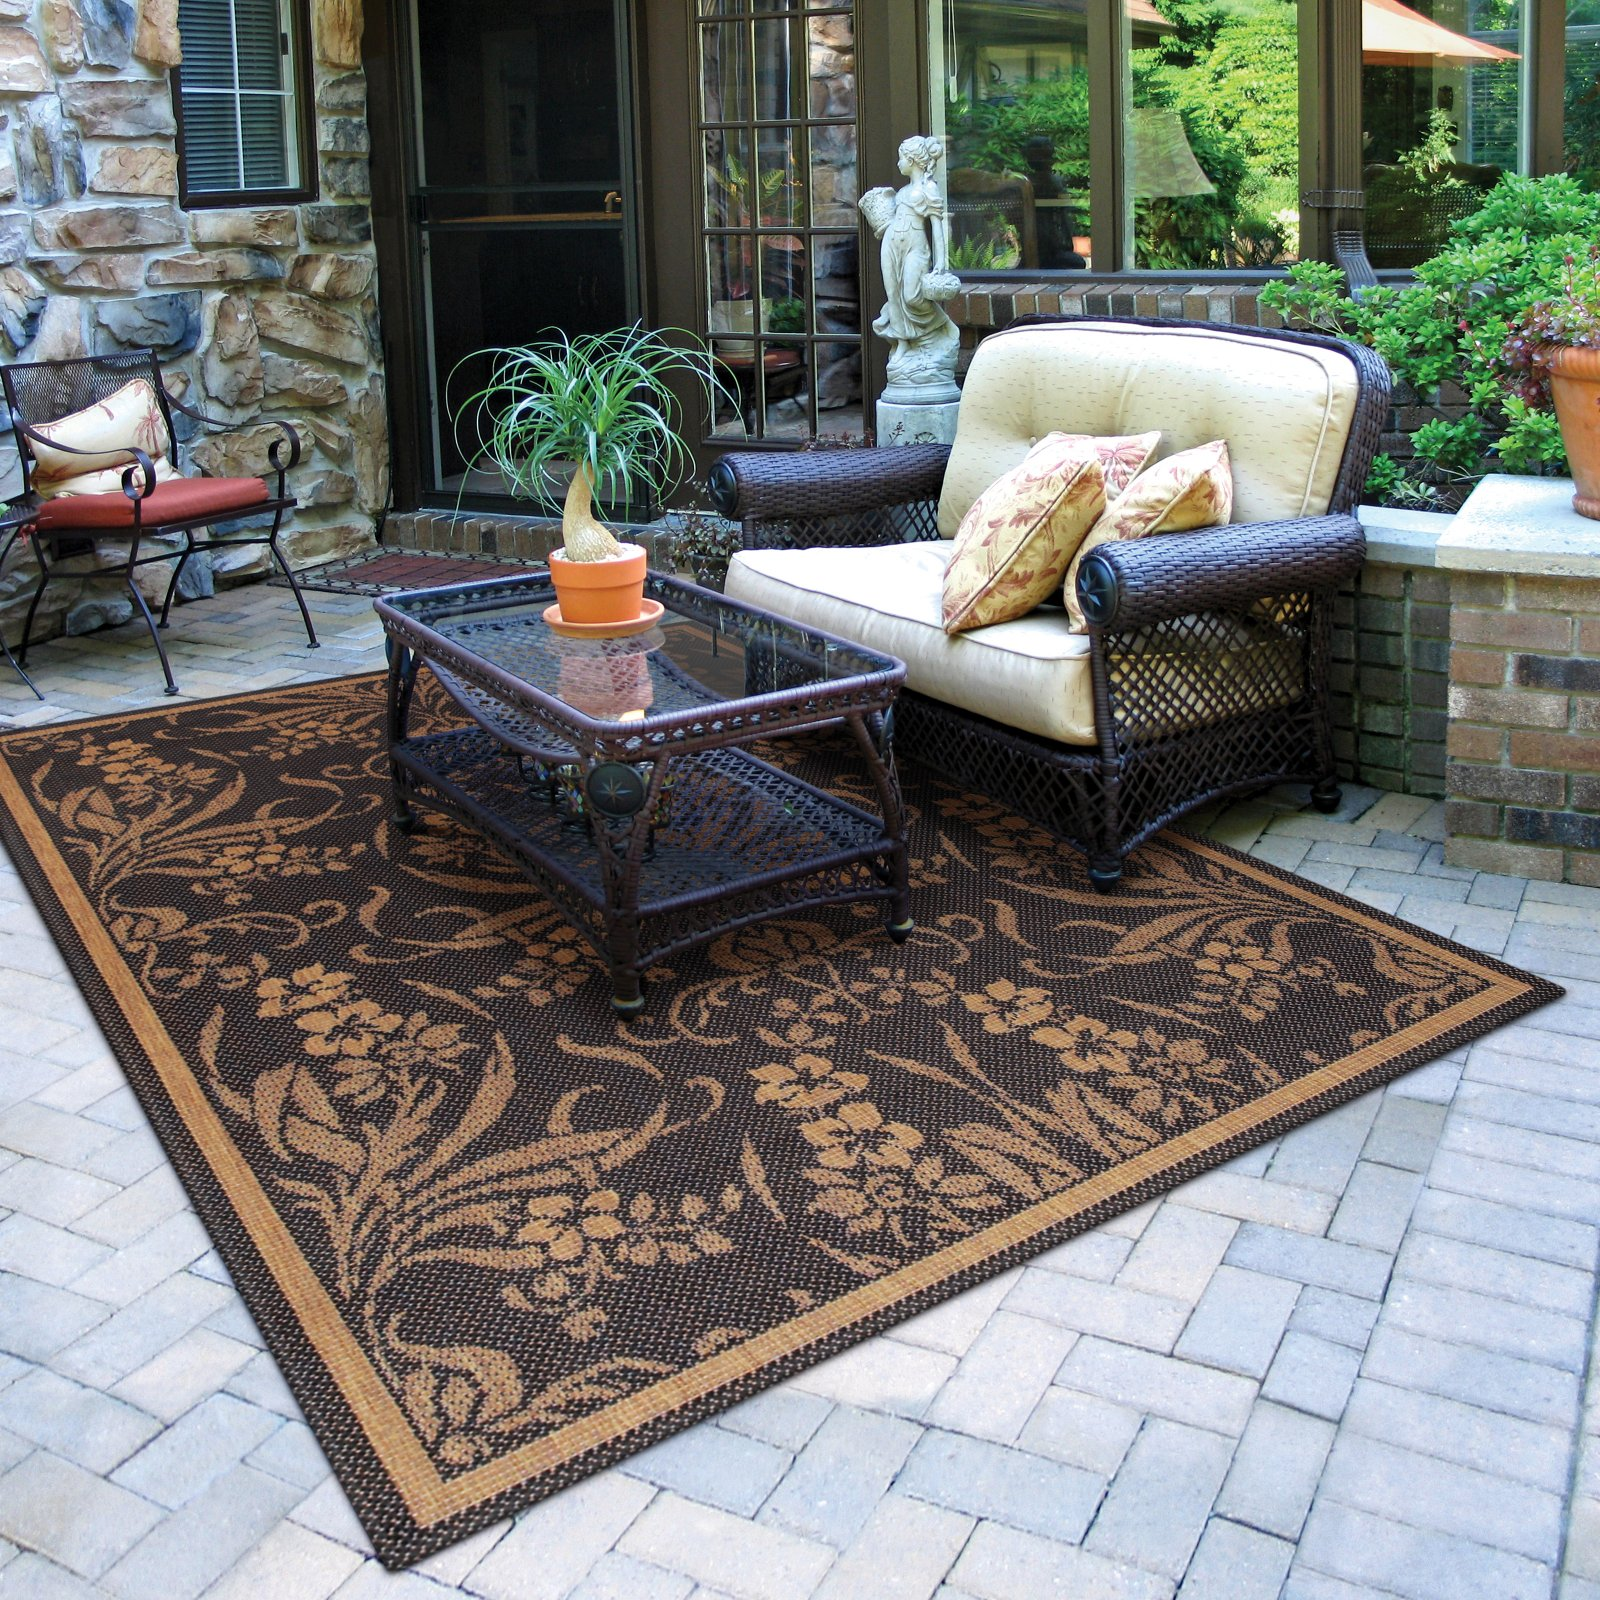 patio rugs nice outdoor patio rug patio decor plan outdoor rugs for patios enter JUXTCBT